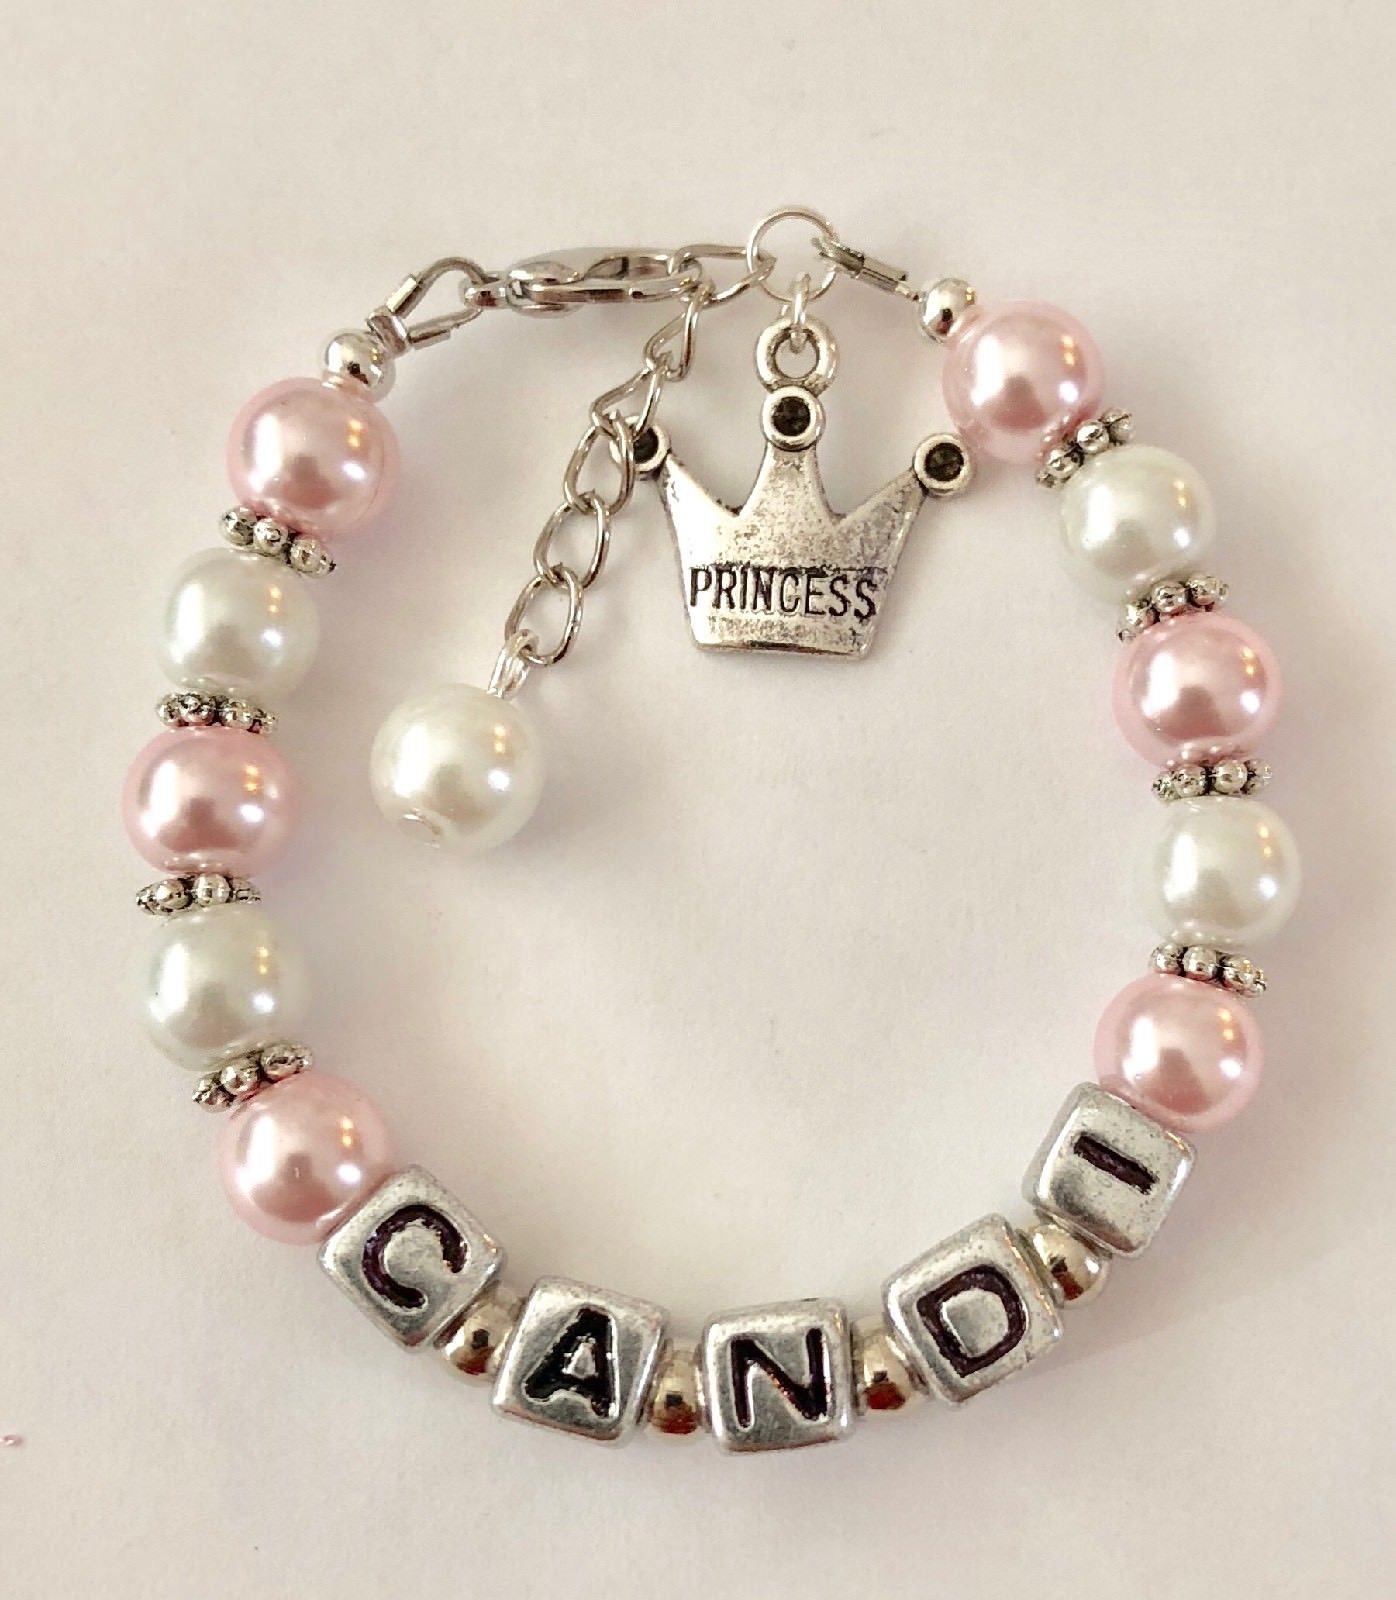 Personalized Girl's Name Bracelet